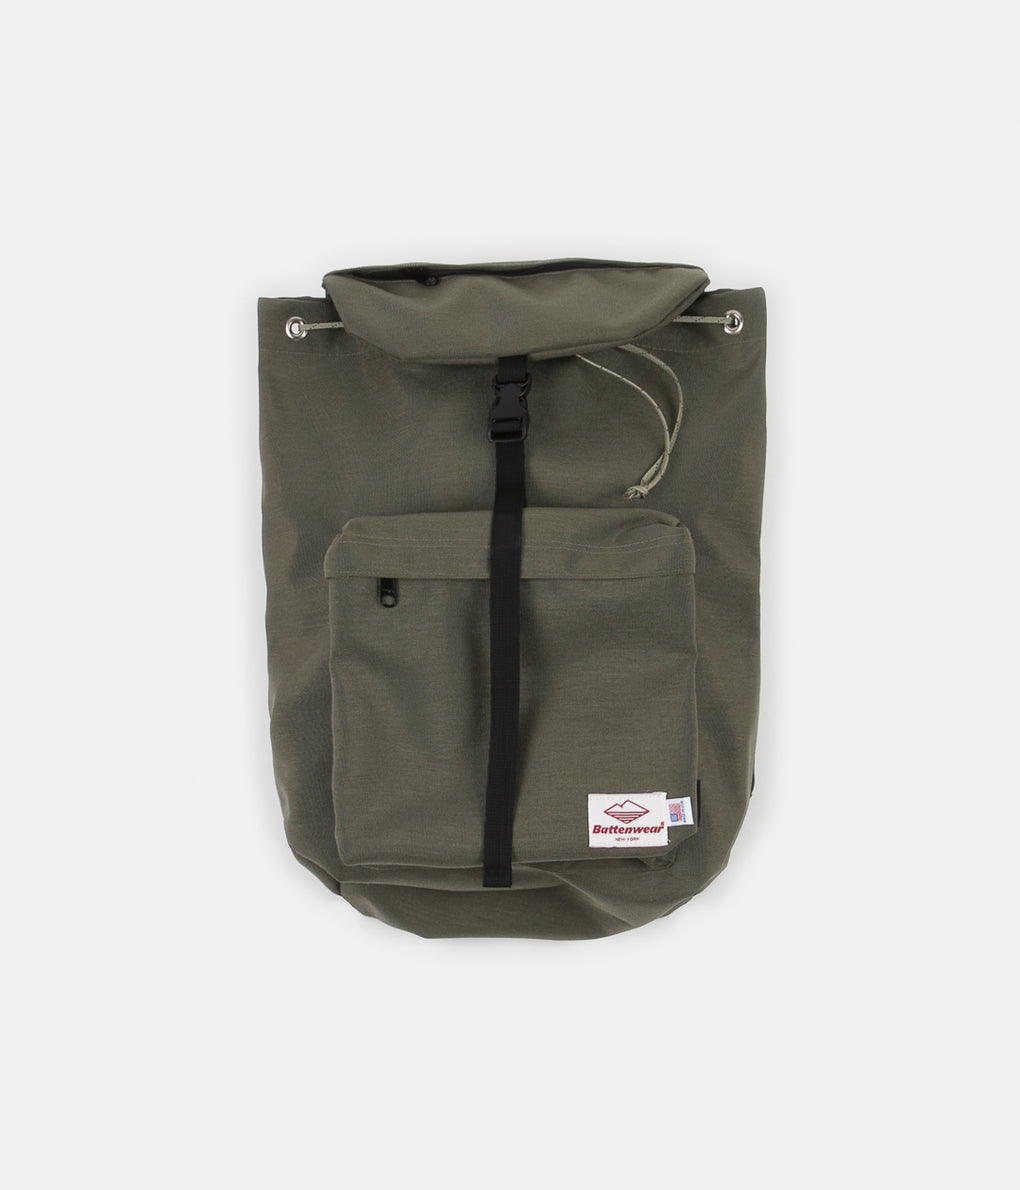 Battenwear Day Hiker Backpack - Ranger